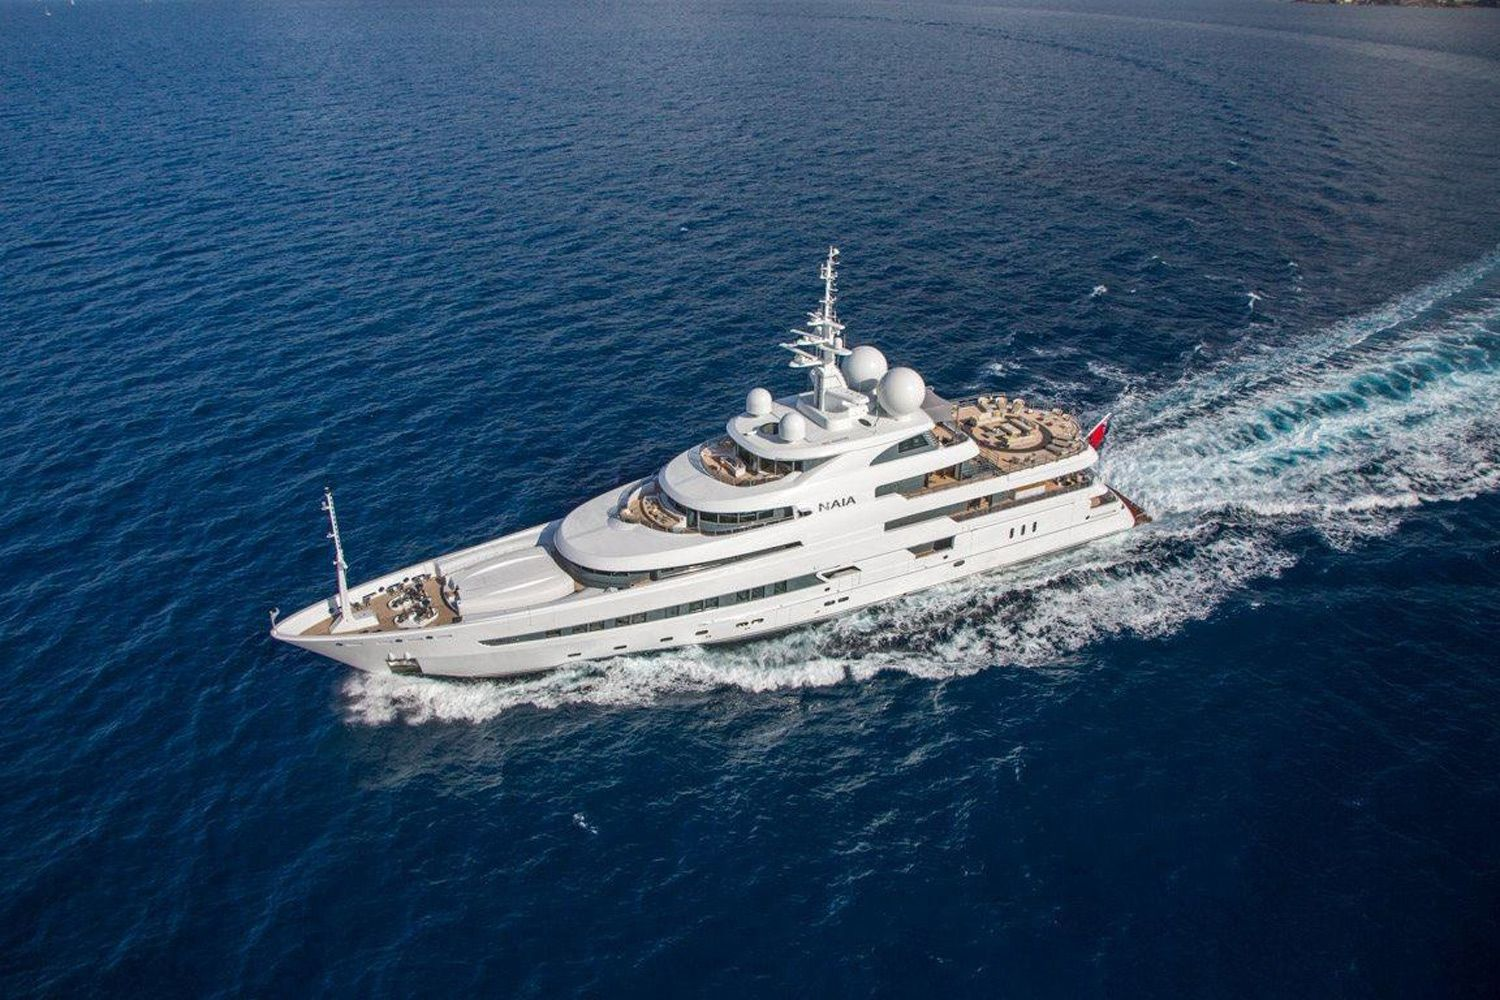 The 241-foot <i>Naia</i> is available for charter this November in Patagonia at a weekly base rate of $695,000.